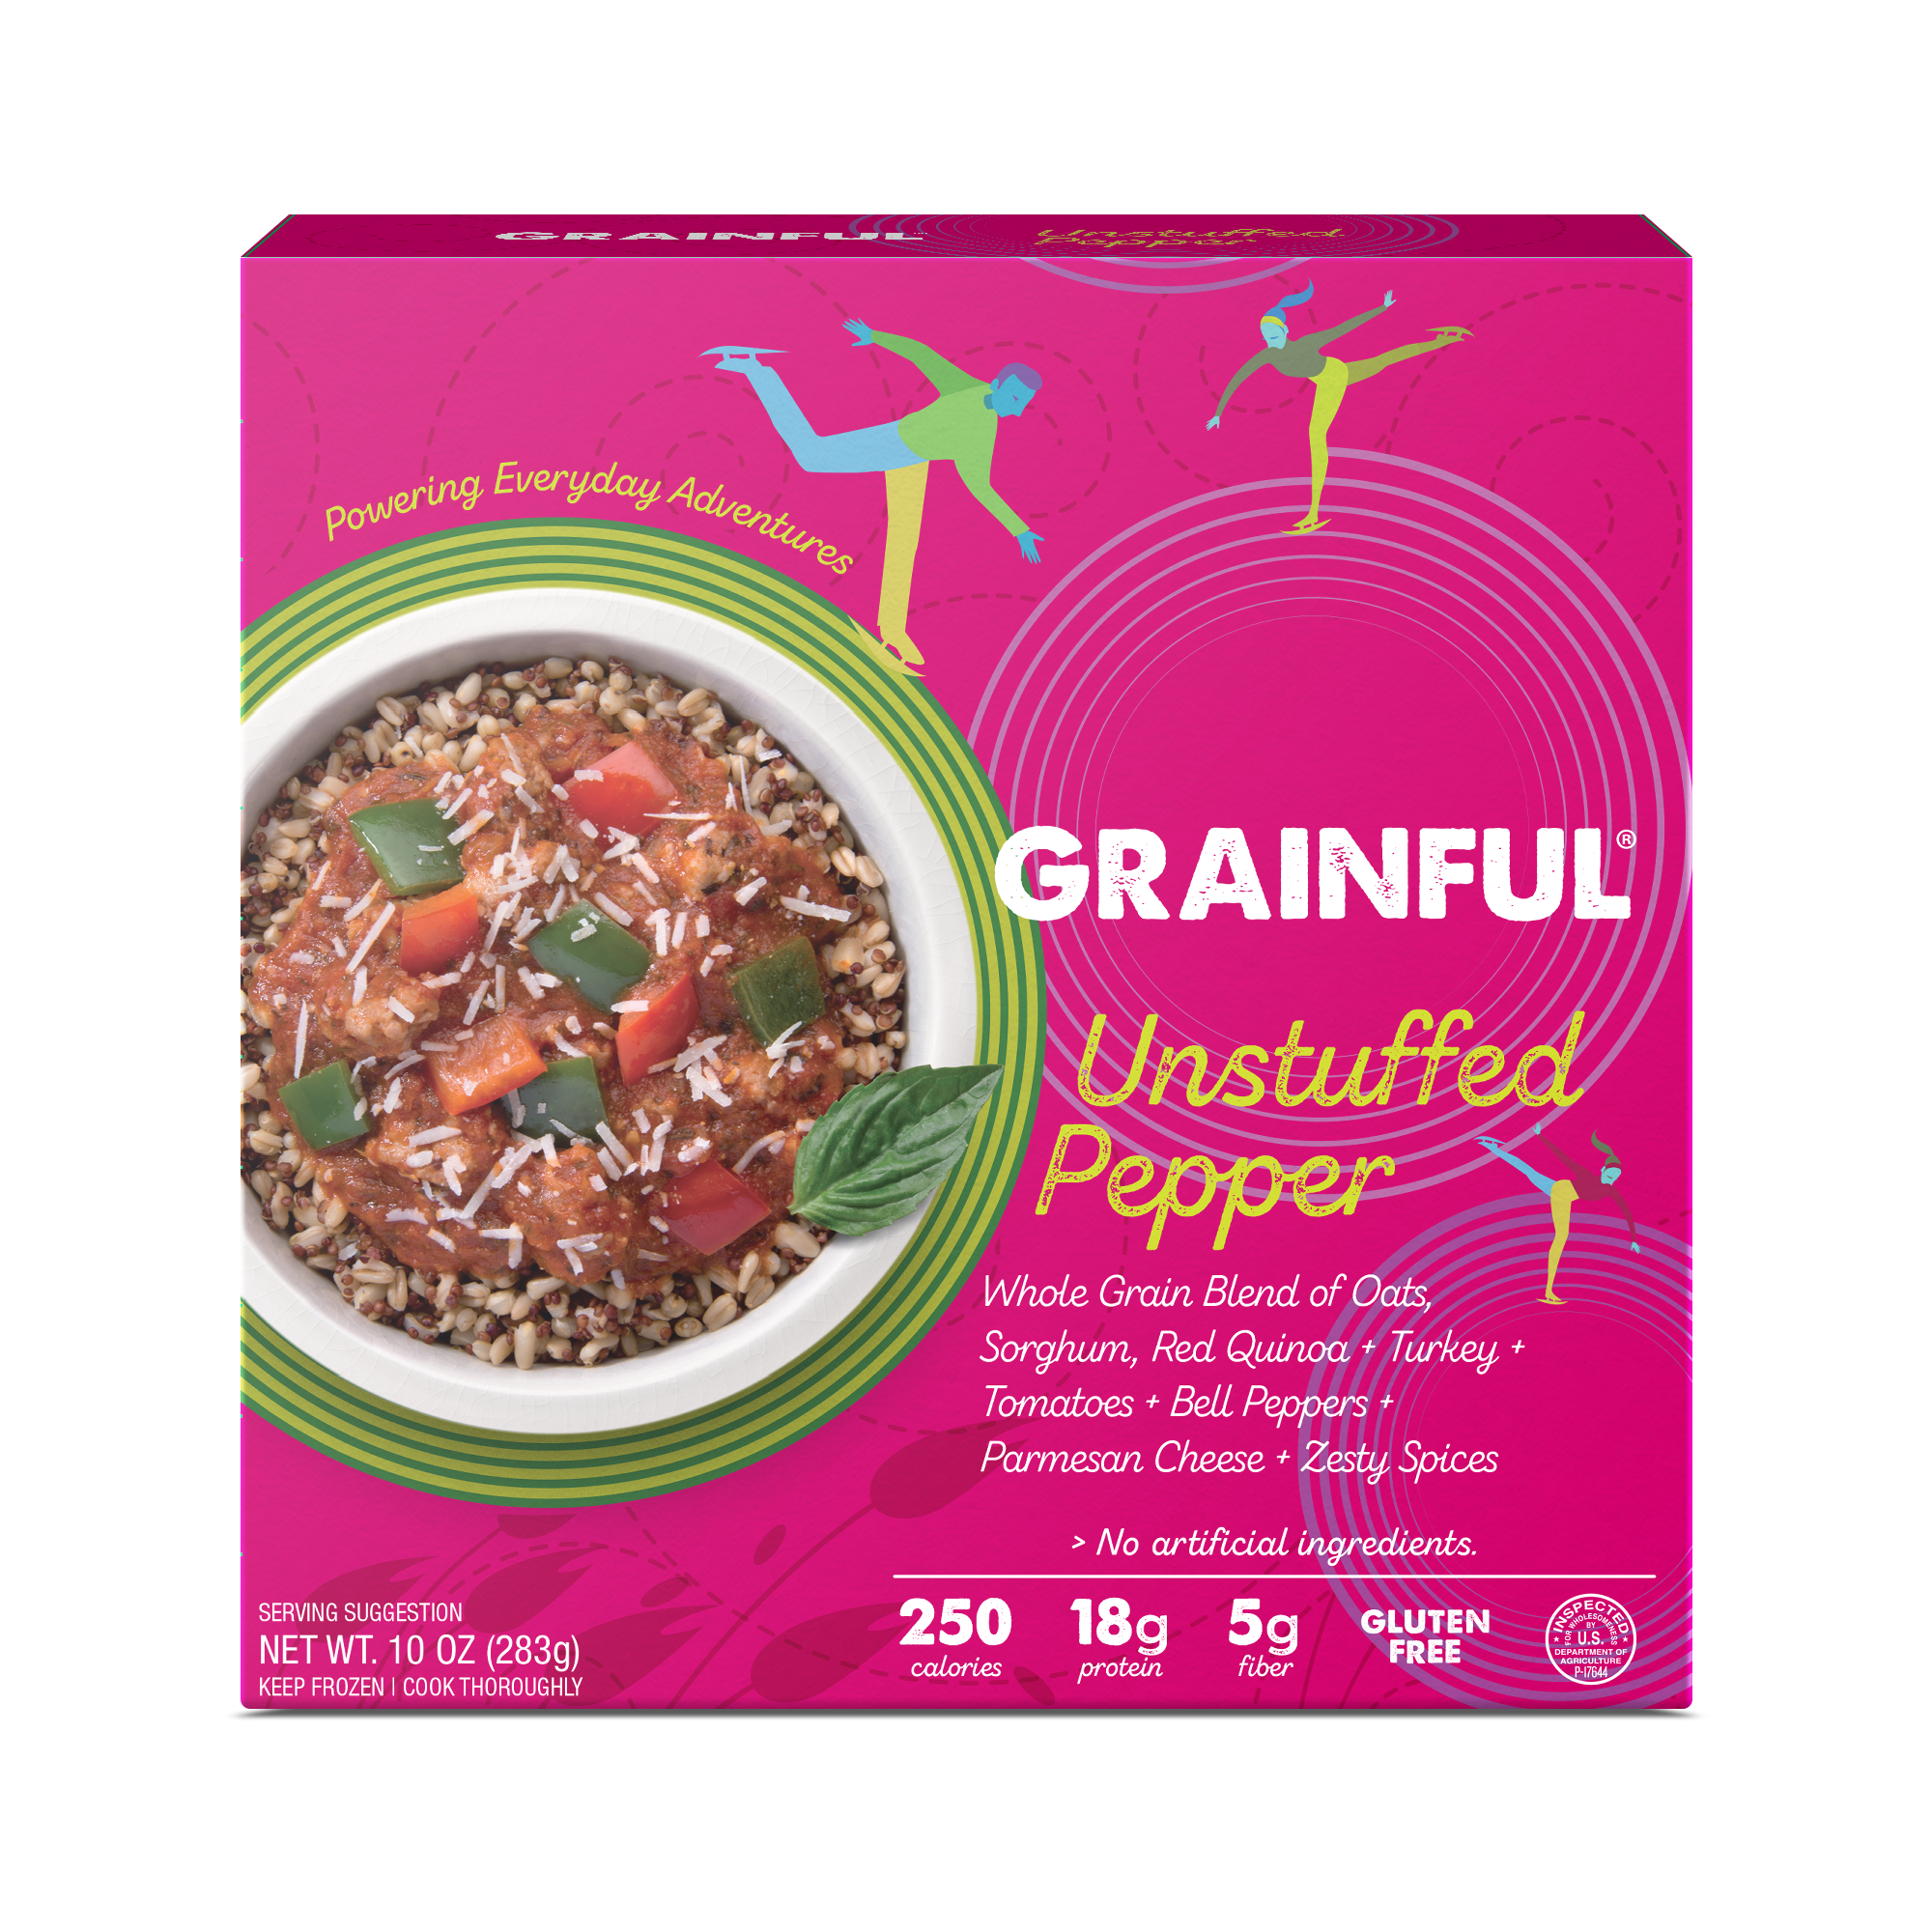 Grainful Amazon 3D Mockup_Unstuffed Pepper.png